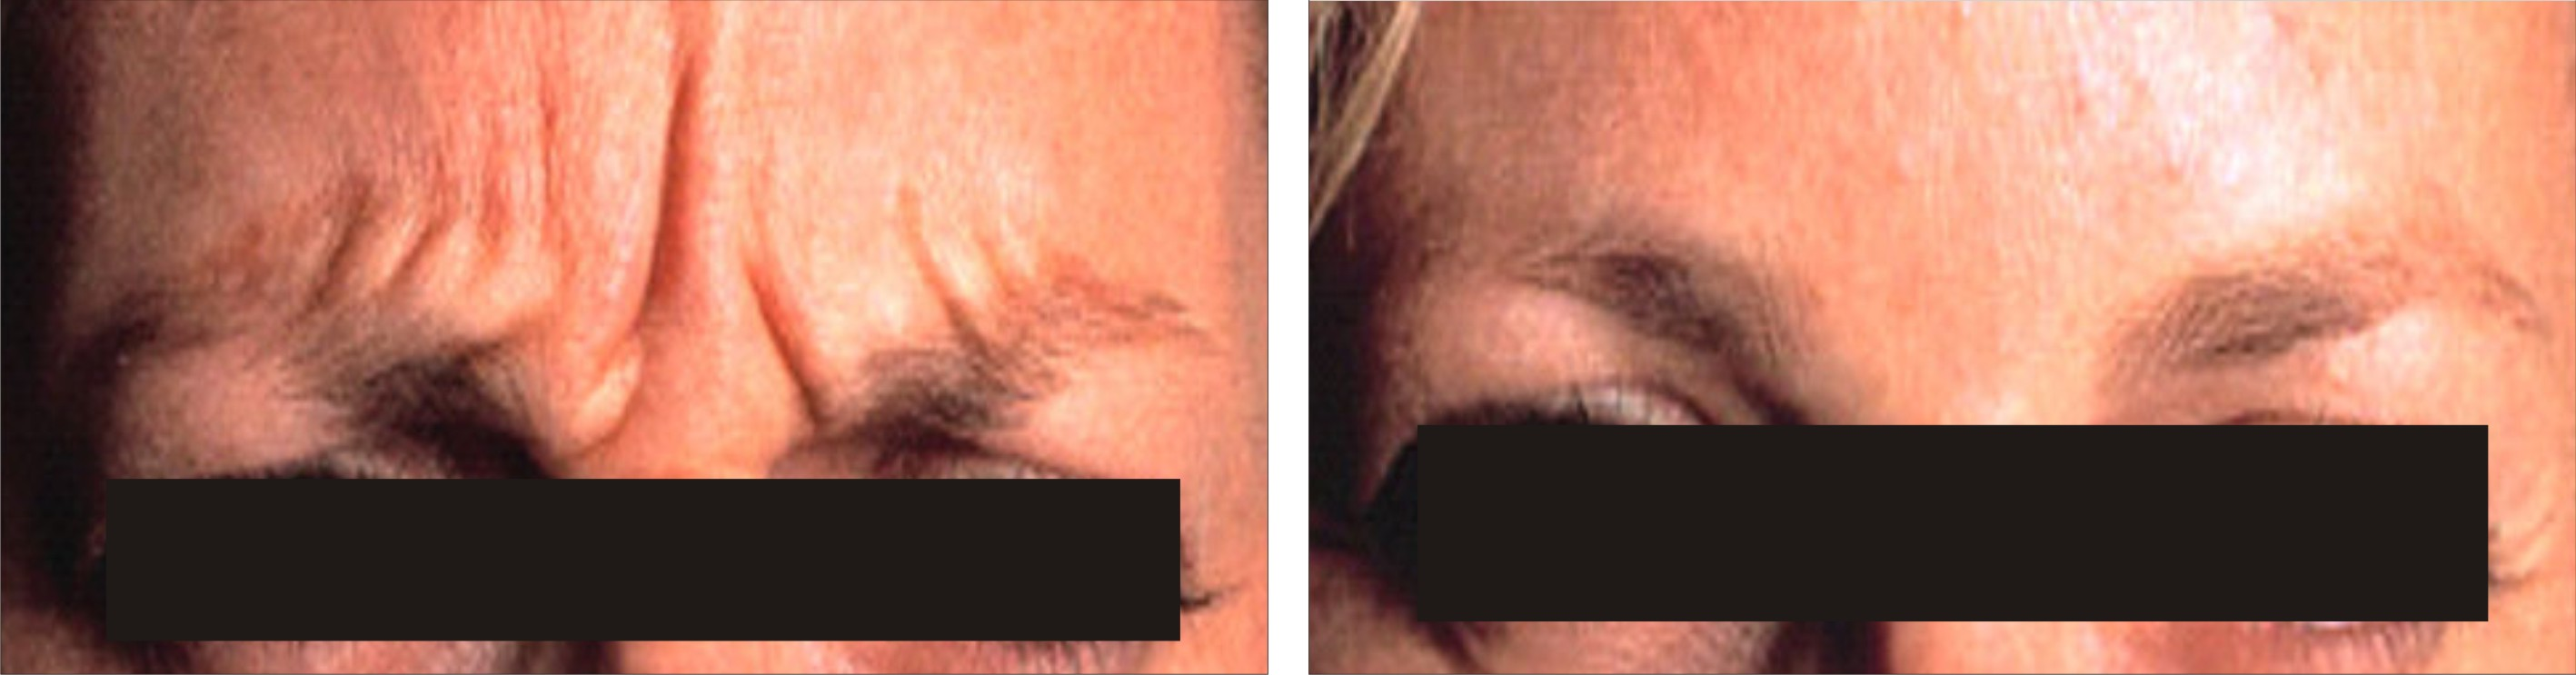 Botulinum Toxin A Image Two